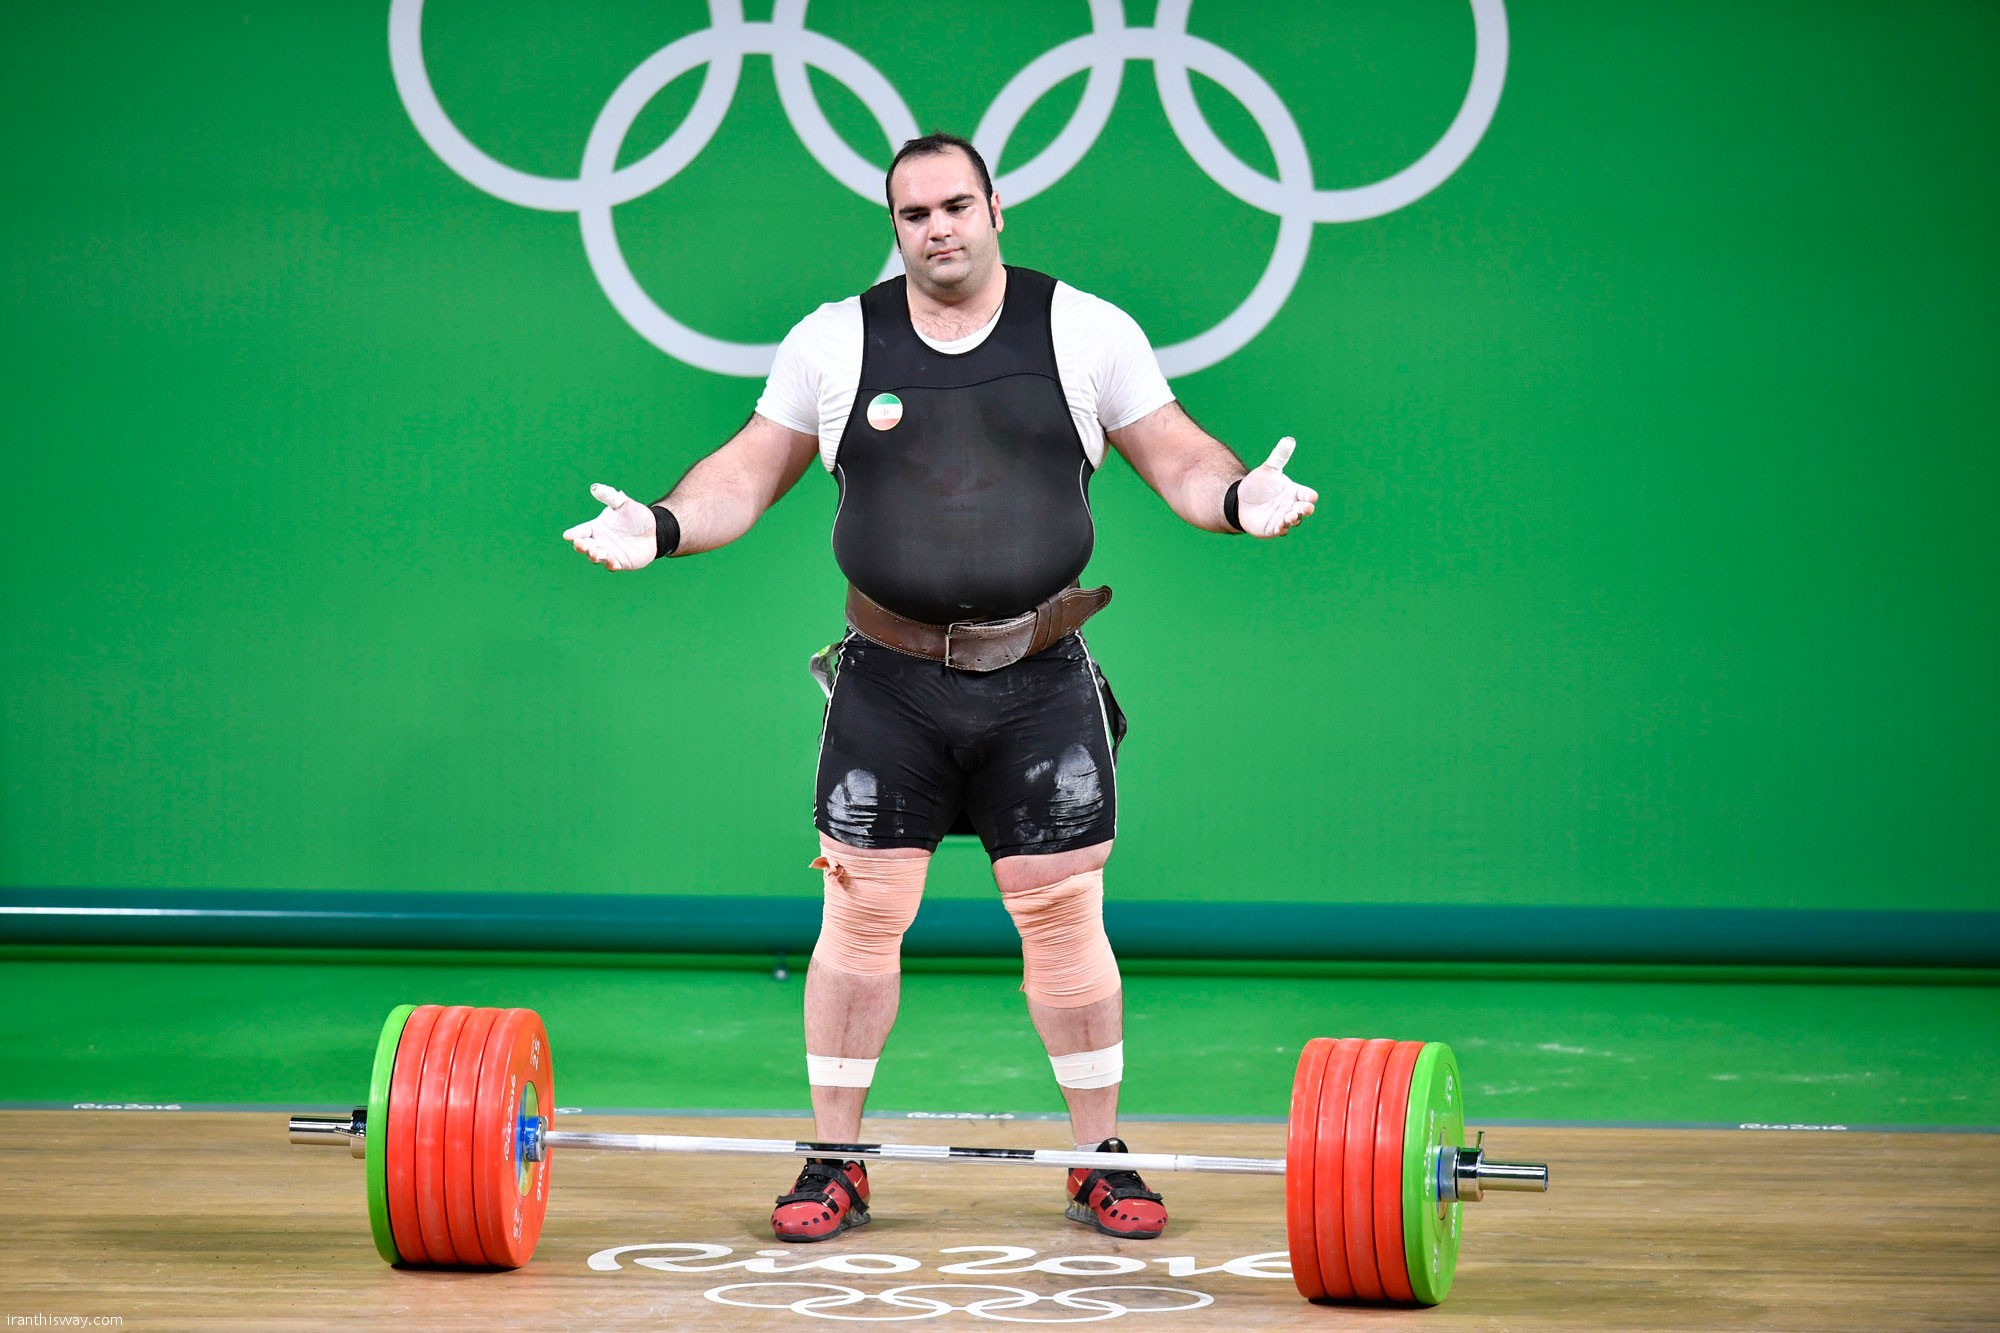 Iran's super heavyweight weightlifter Behdad Salimi failed in Rio 2016 / Photo+Video